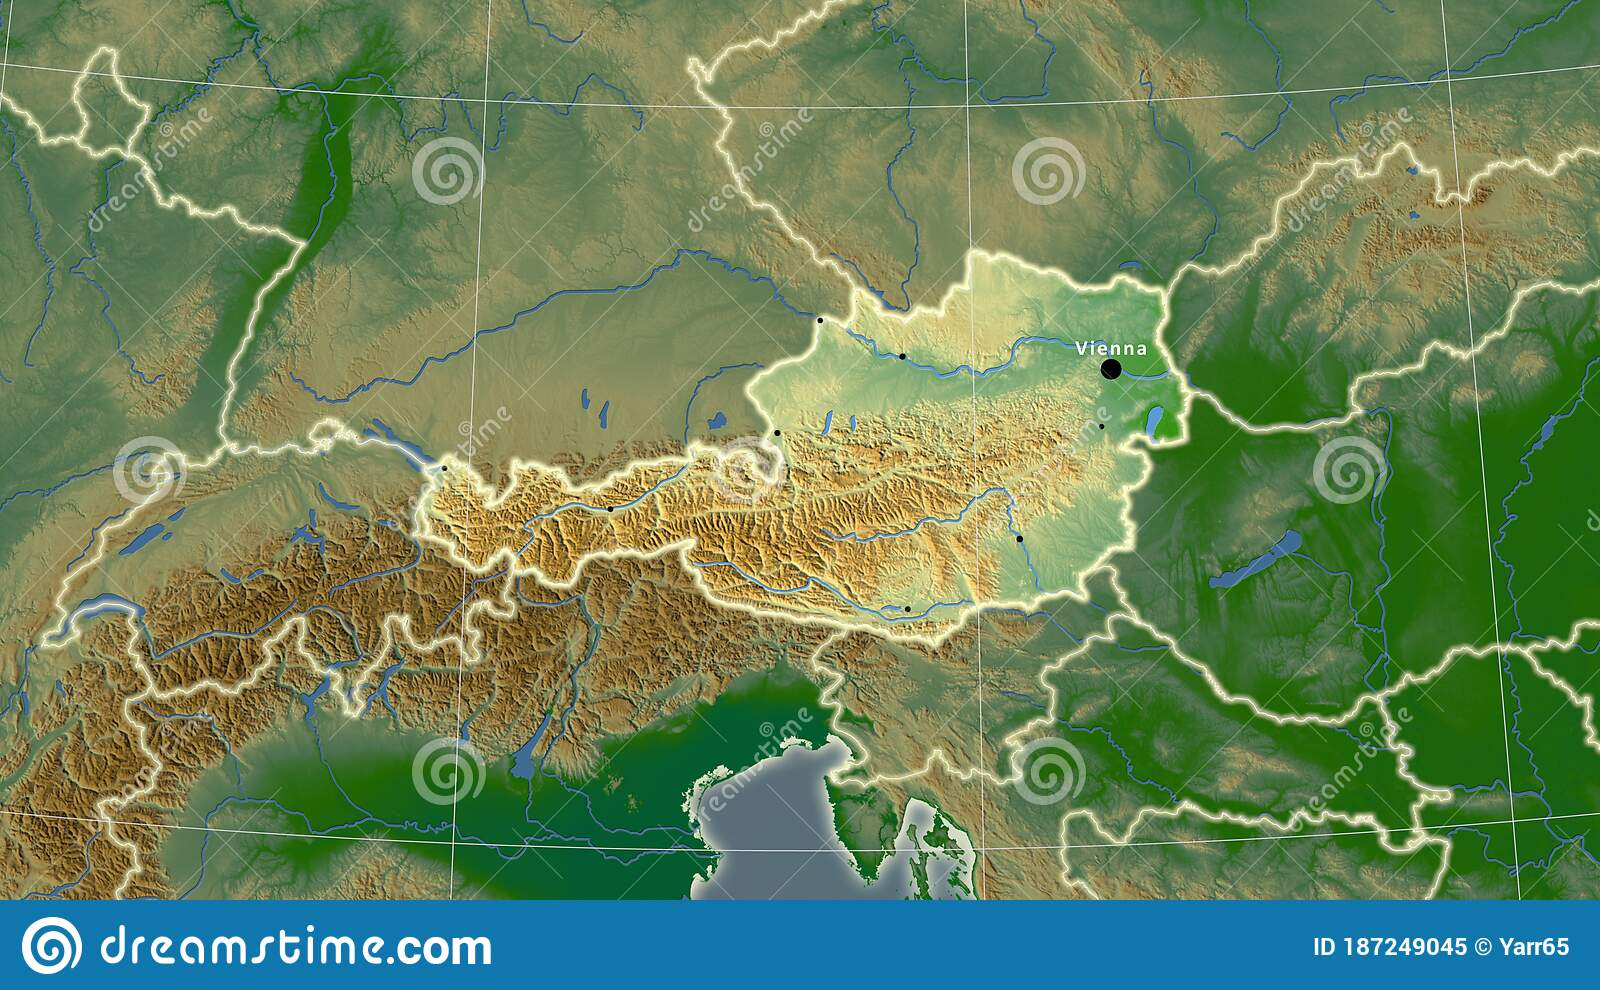 Picture of: Austria Physical Composition Borders Stock Illustration Illustration Of Surface Composition 187249045